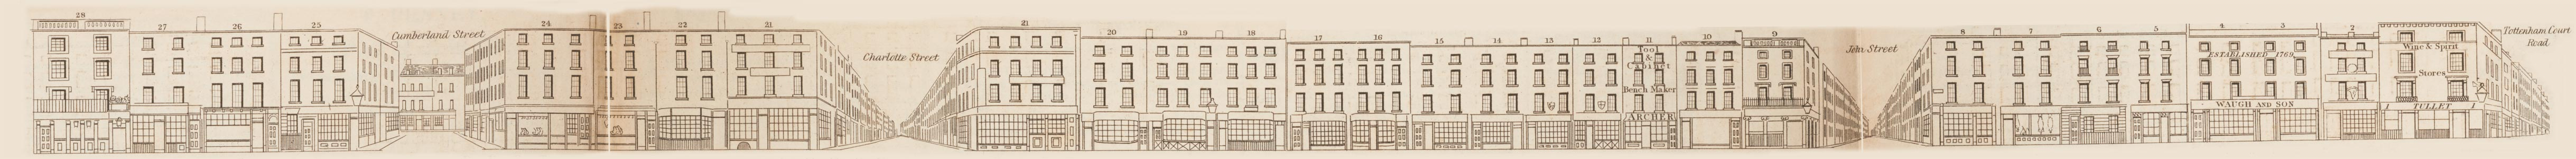 map - Tallis's London street views : No. 54. Goodge Street, Tottenham Court Road (north)